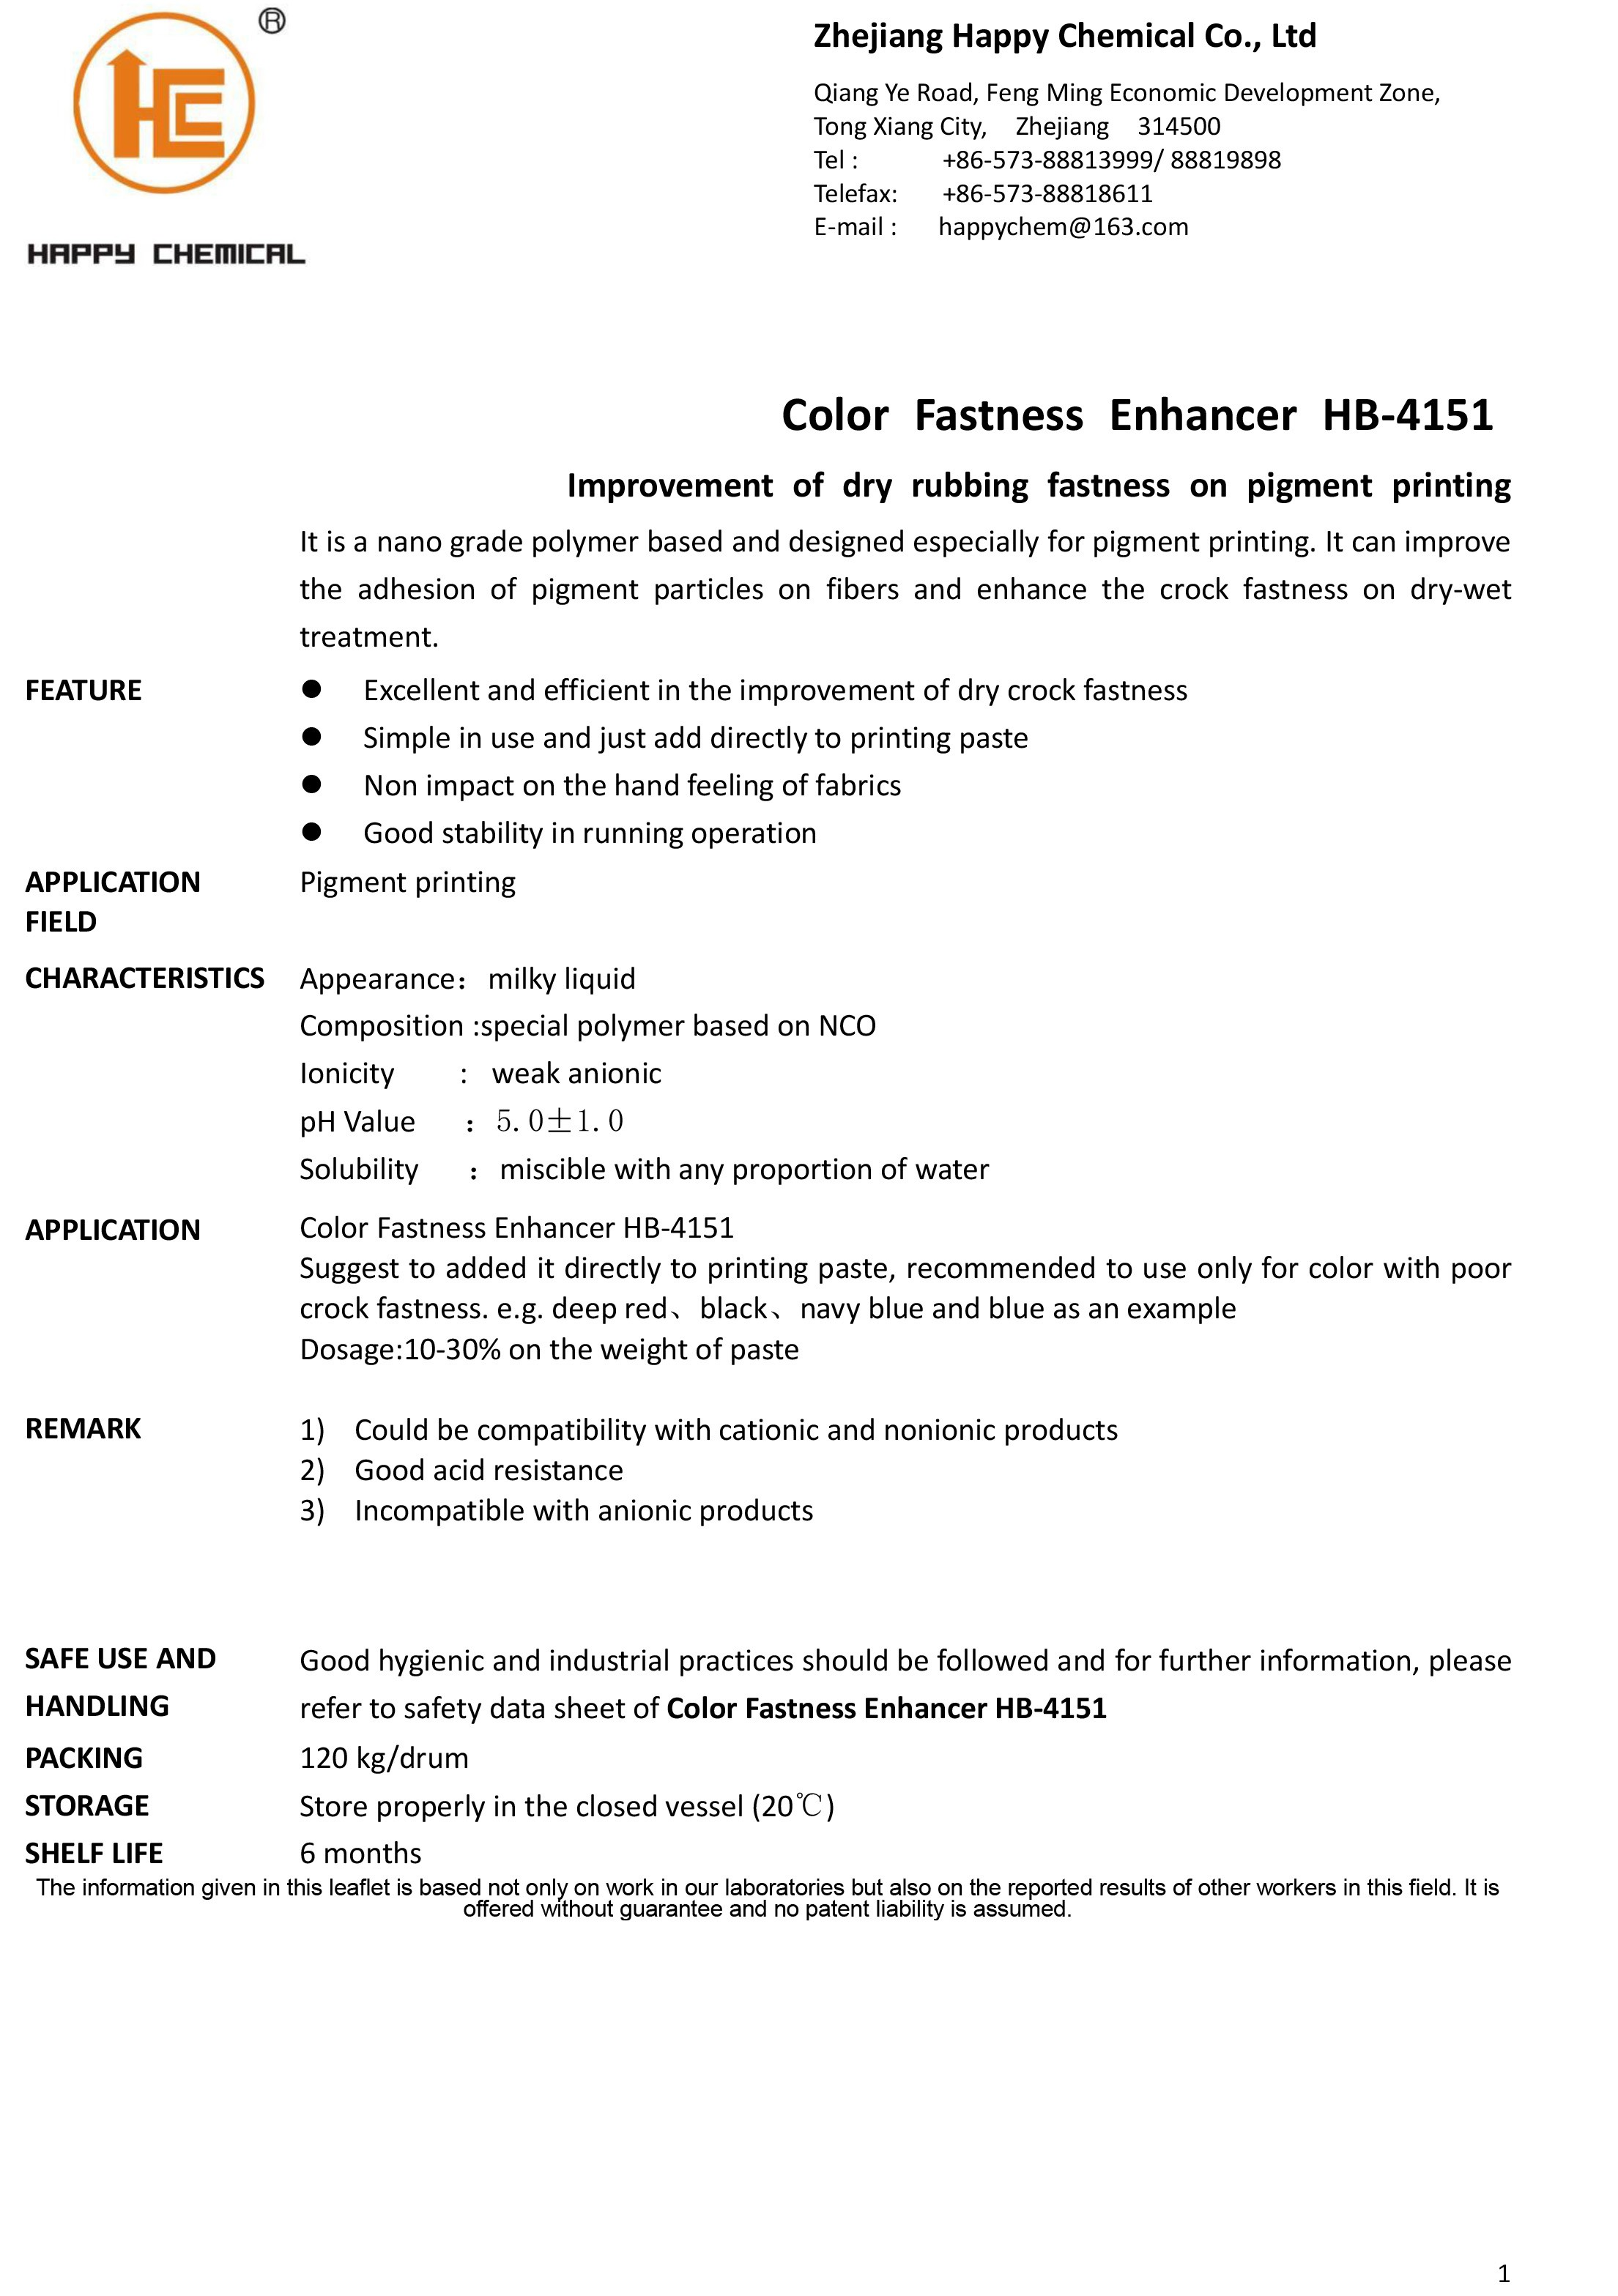 TDS color fastness enhancer HB-4151 English Version.jpg